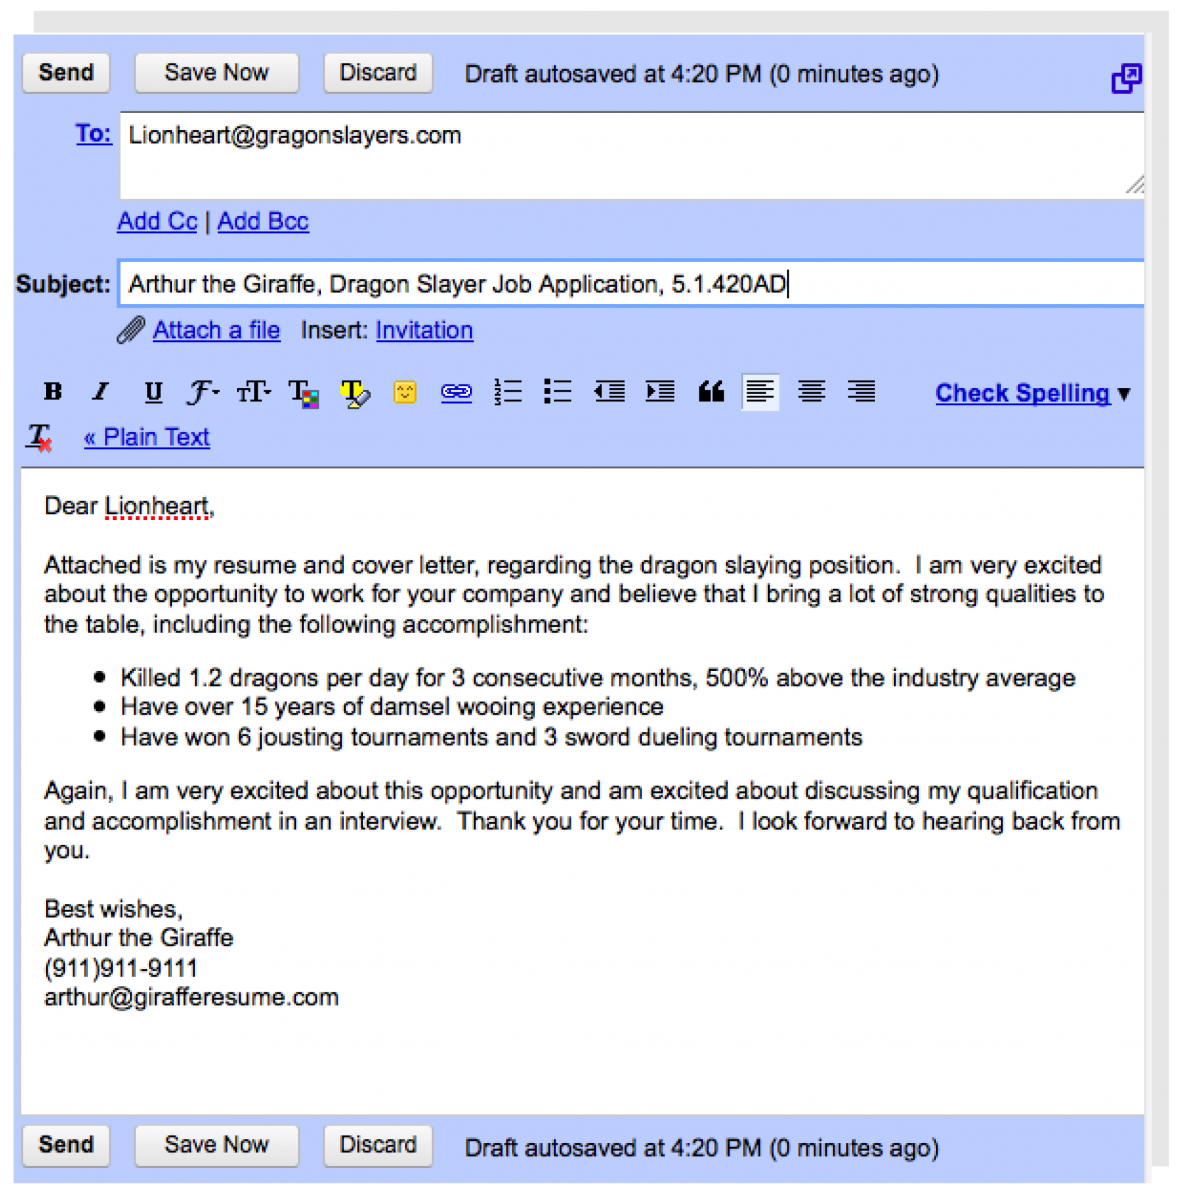 How to send resume and cover letter via email